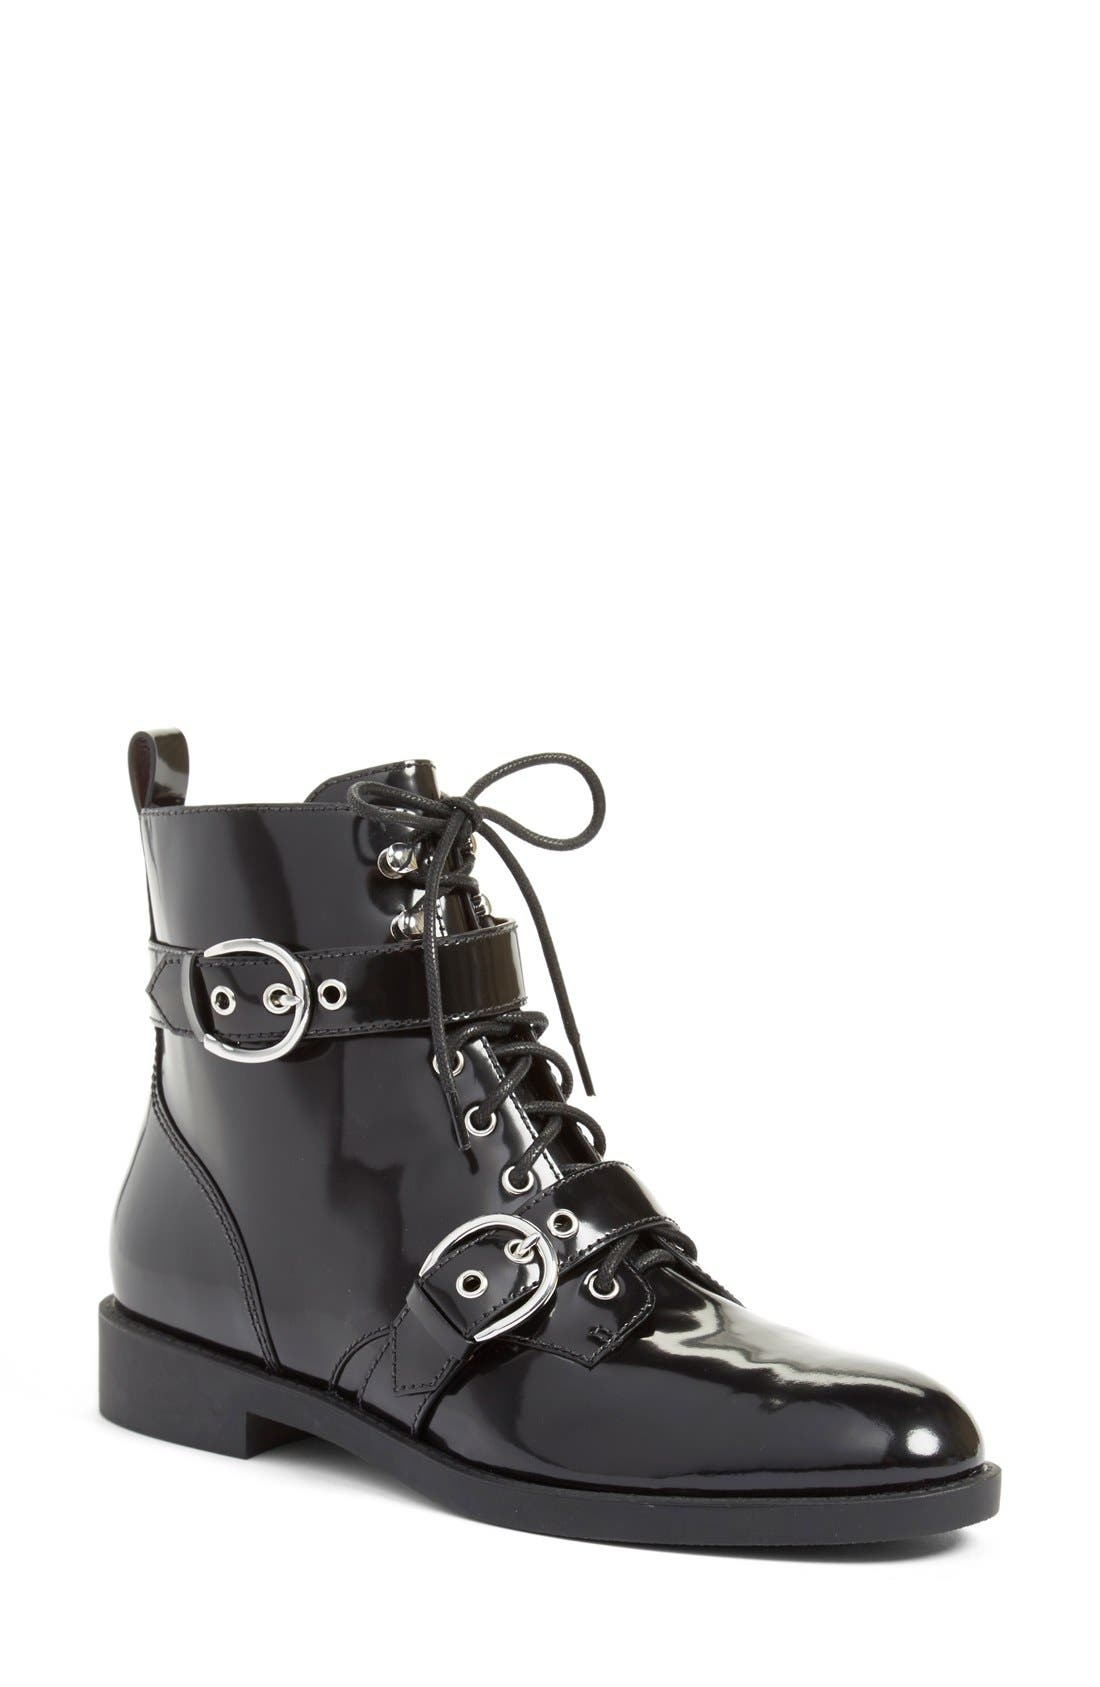 Alternate Image 1 Selected - MARC JACOBS 'Taylor' Moto Ankle Boot (Women)